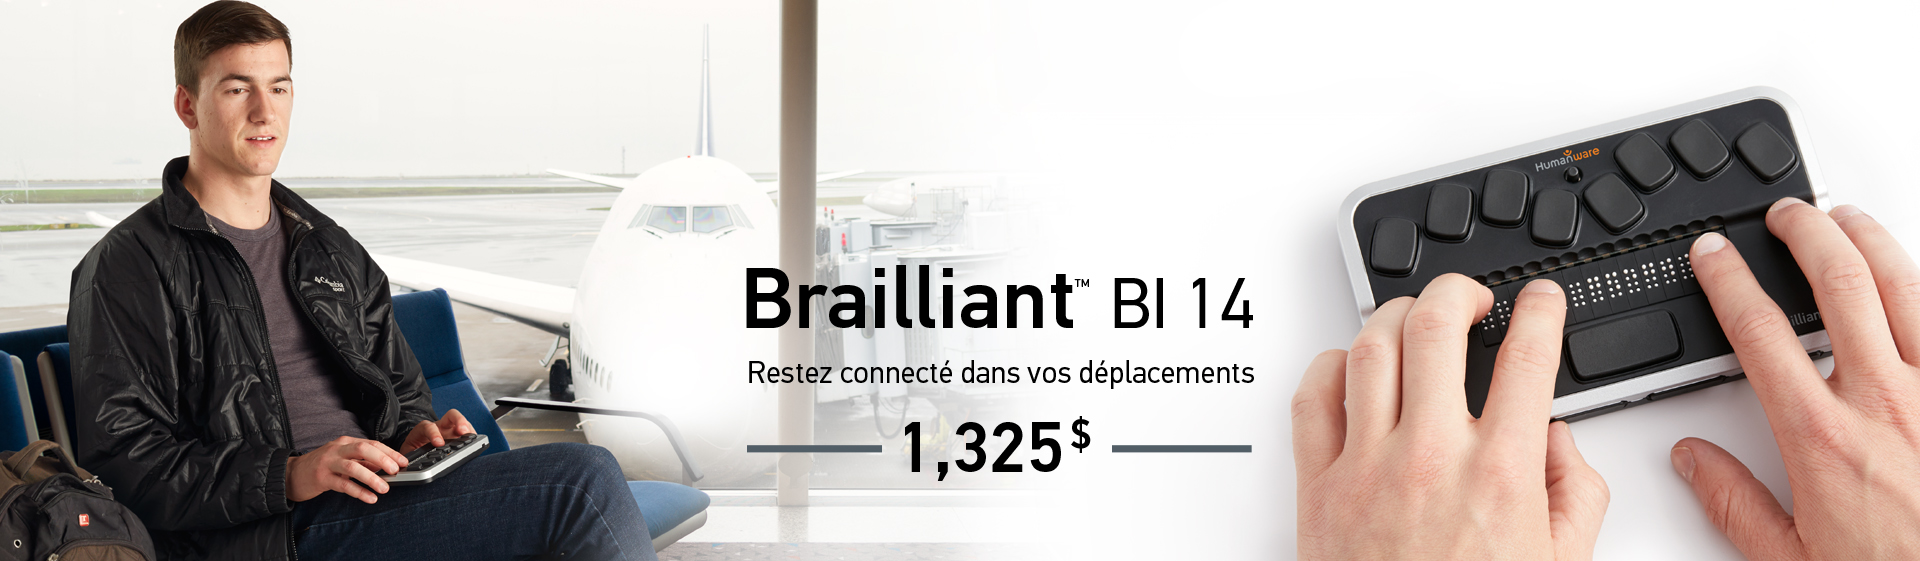 Brailliant BI 14 - Stay on track when you're on the go - $1325